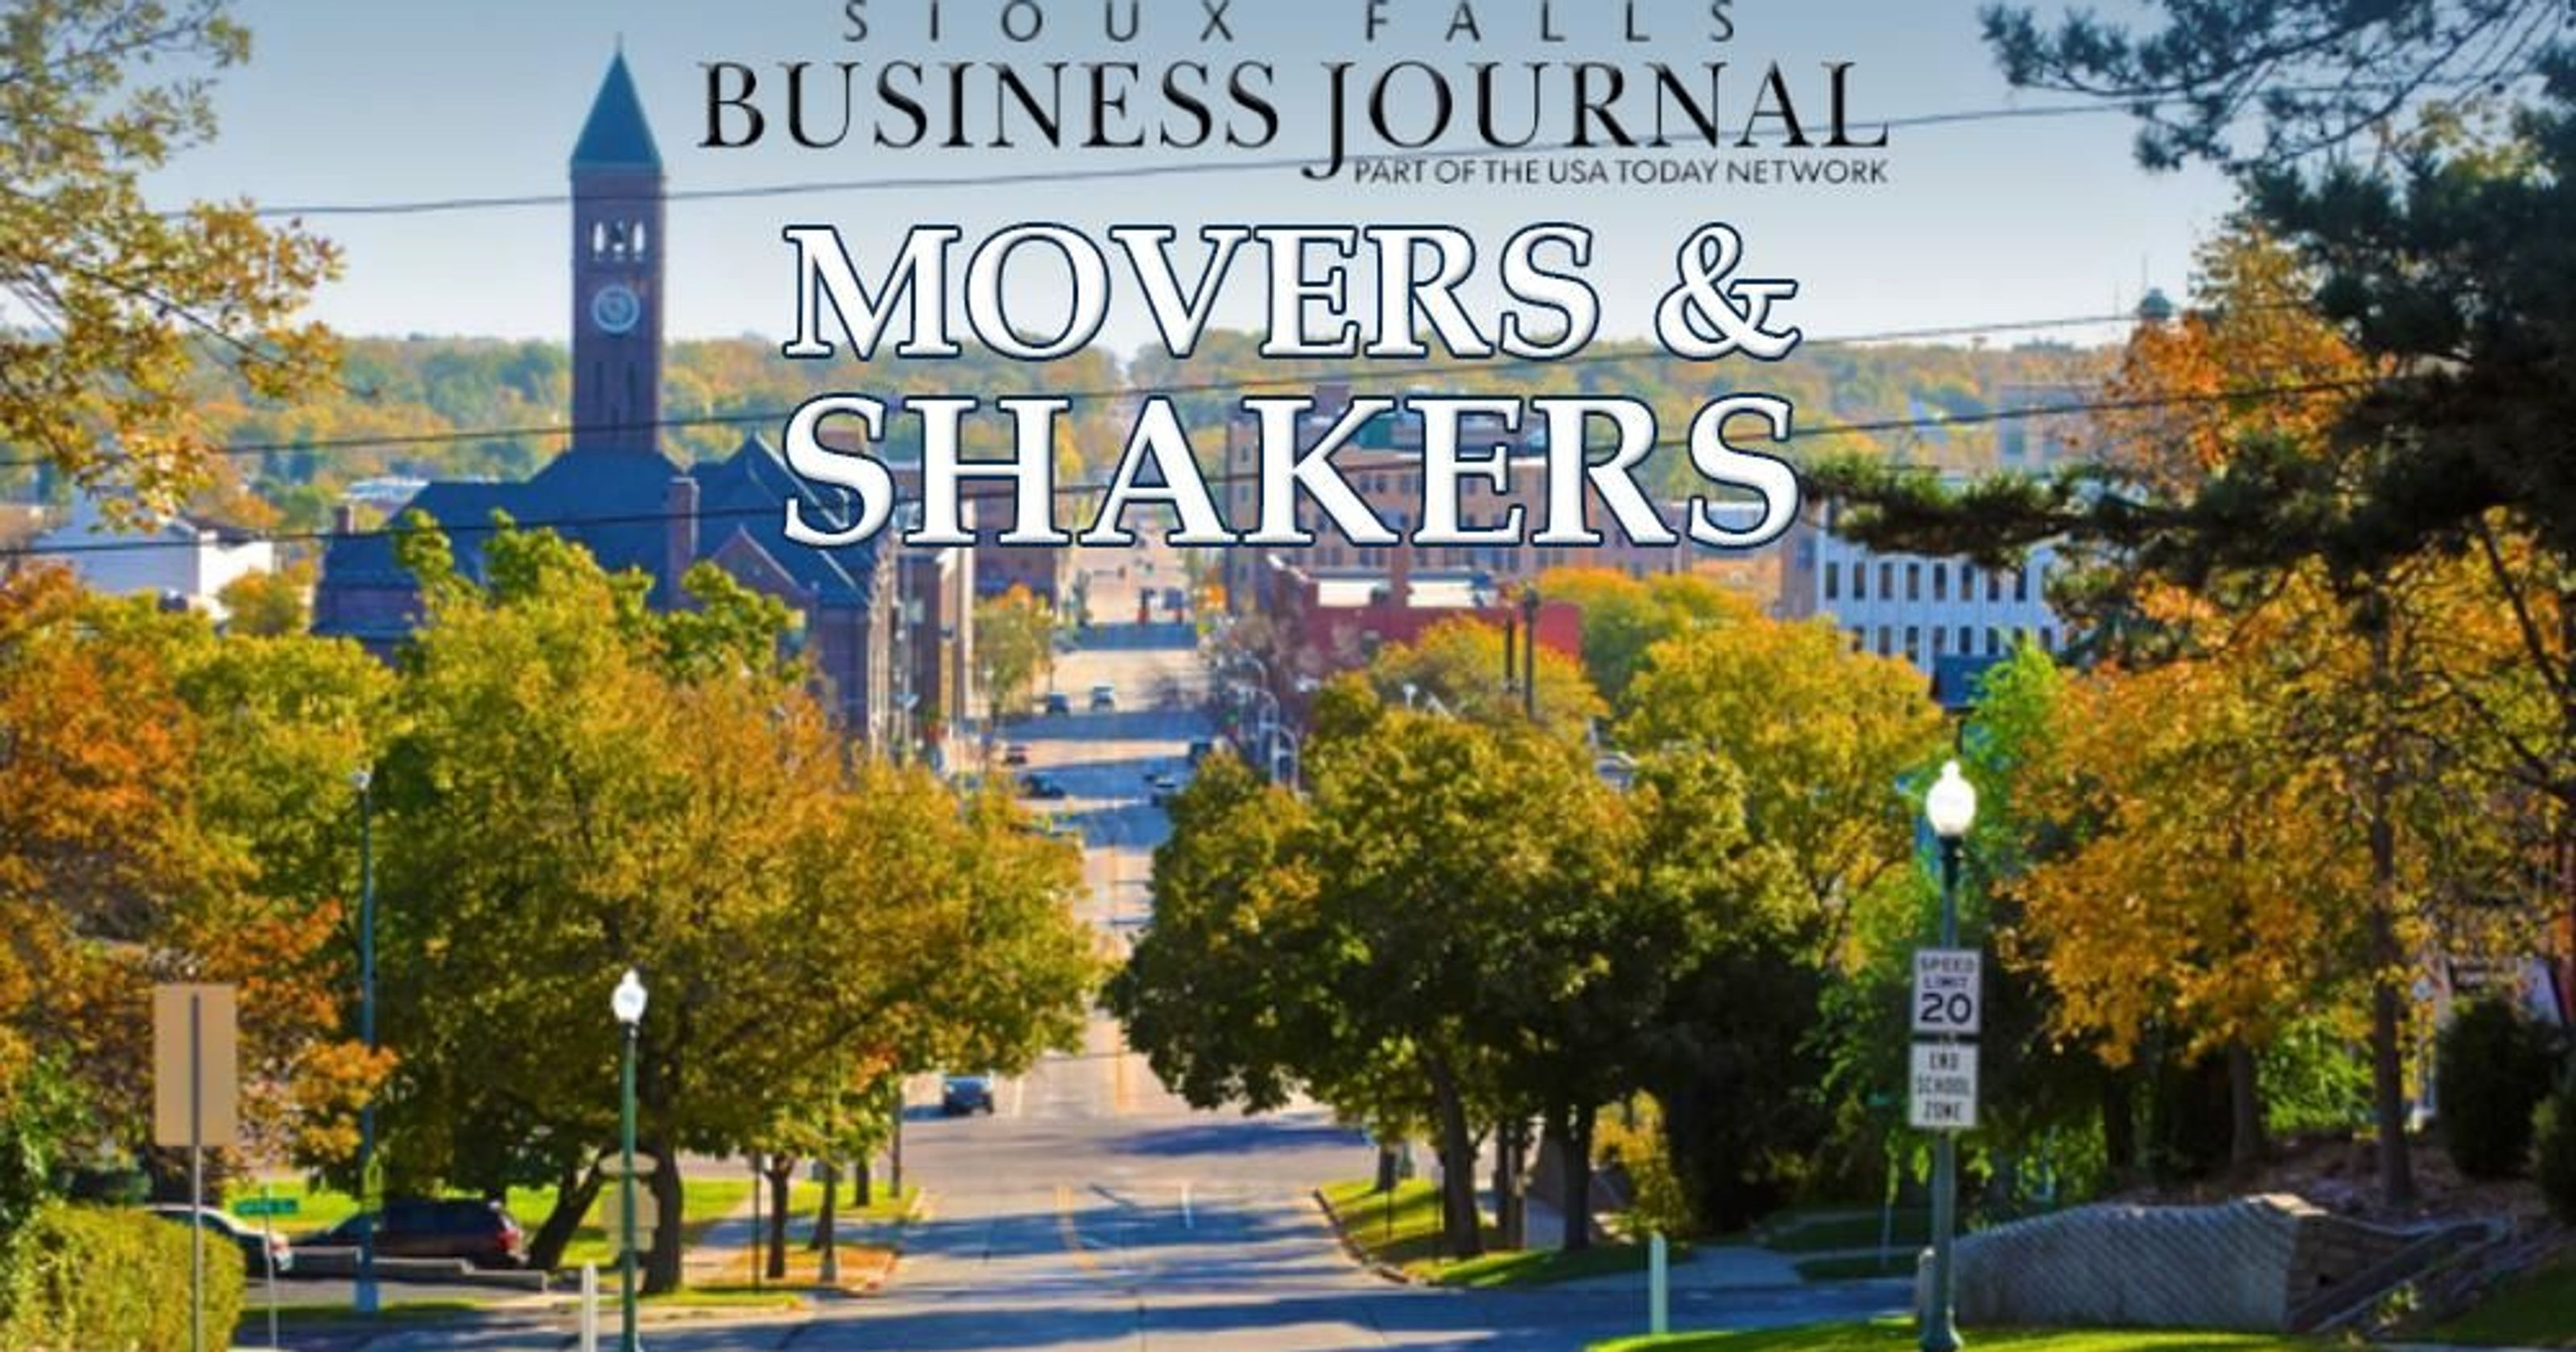 Sioux Falls Movers & Shakers: Aug. 15